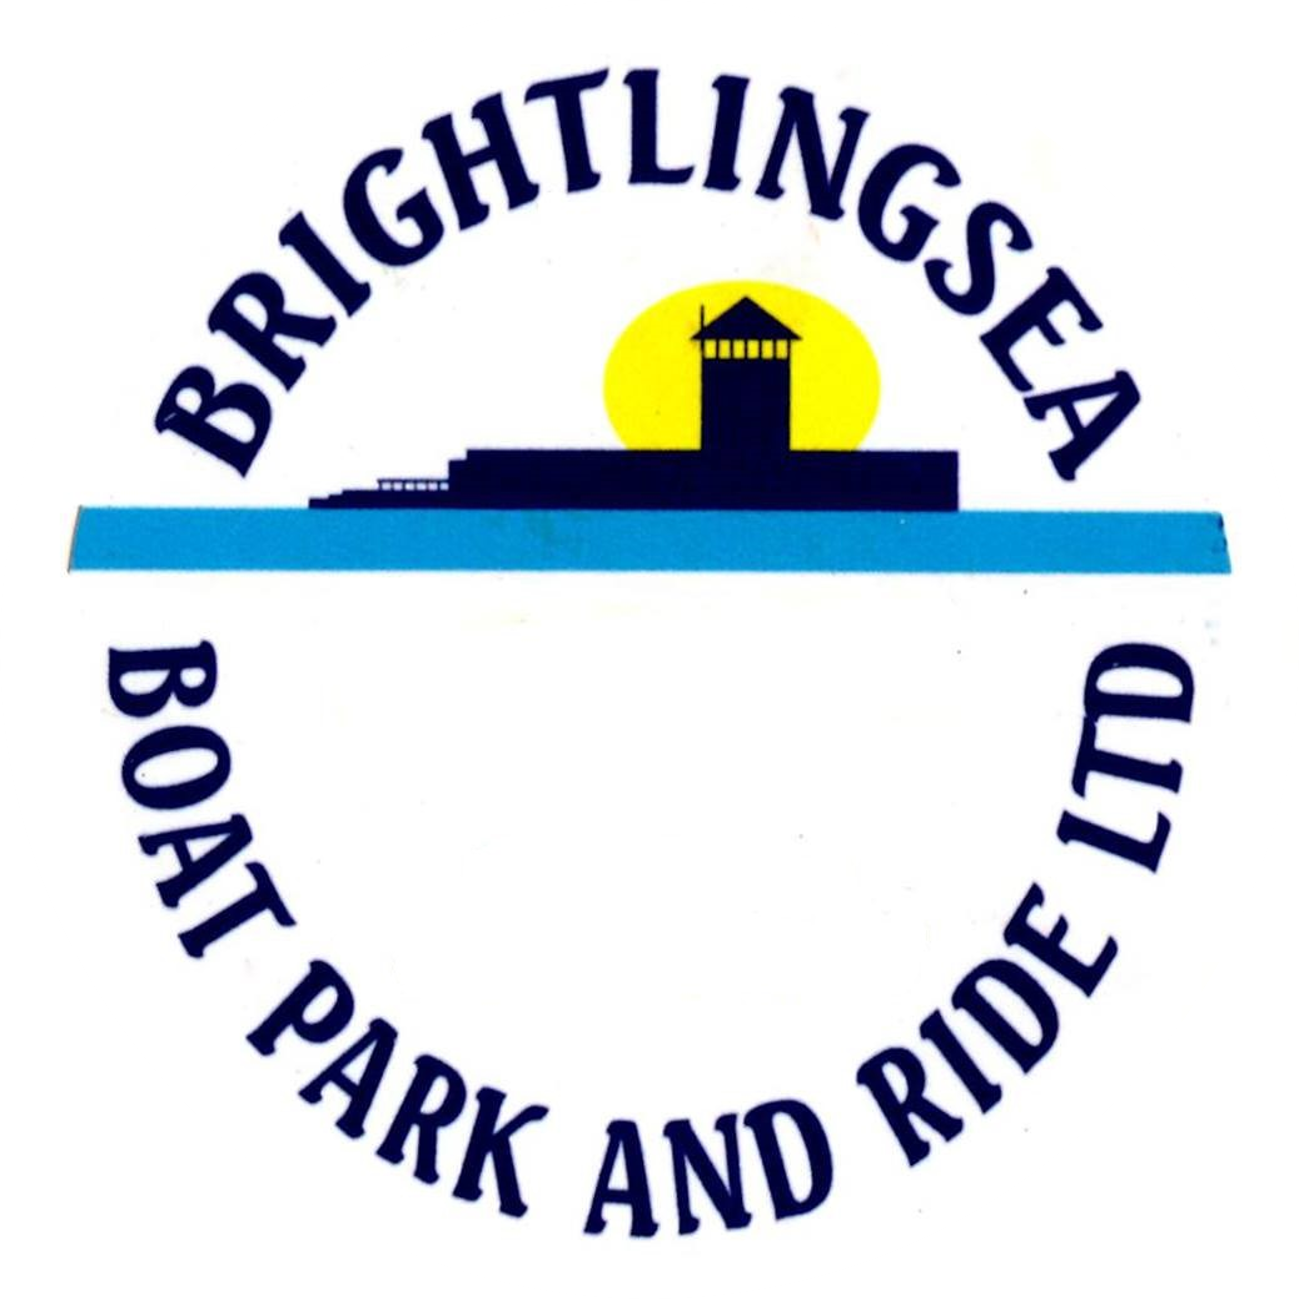 Brightlingsea Boat Park and Ride